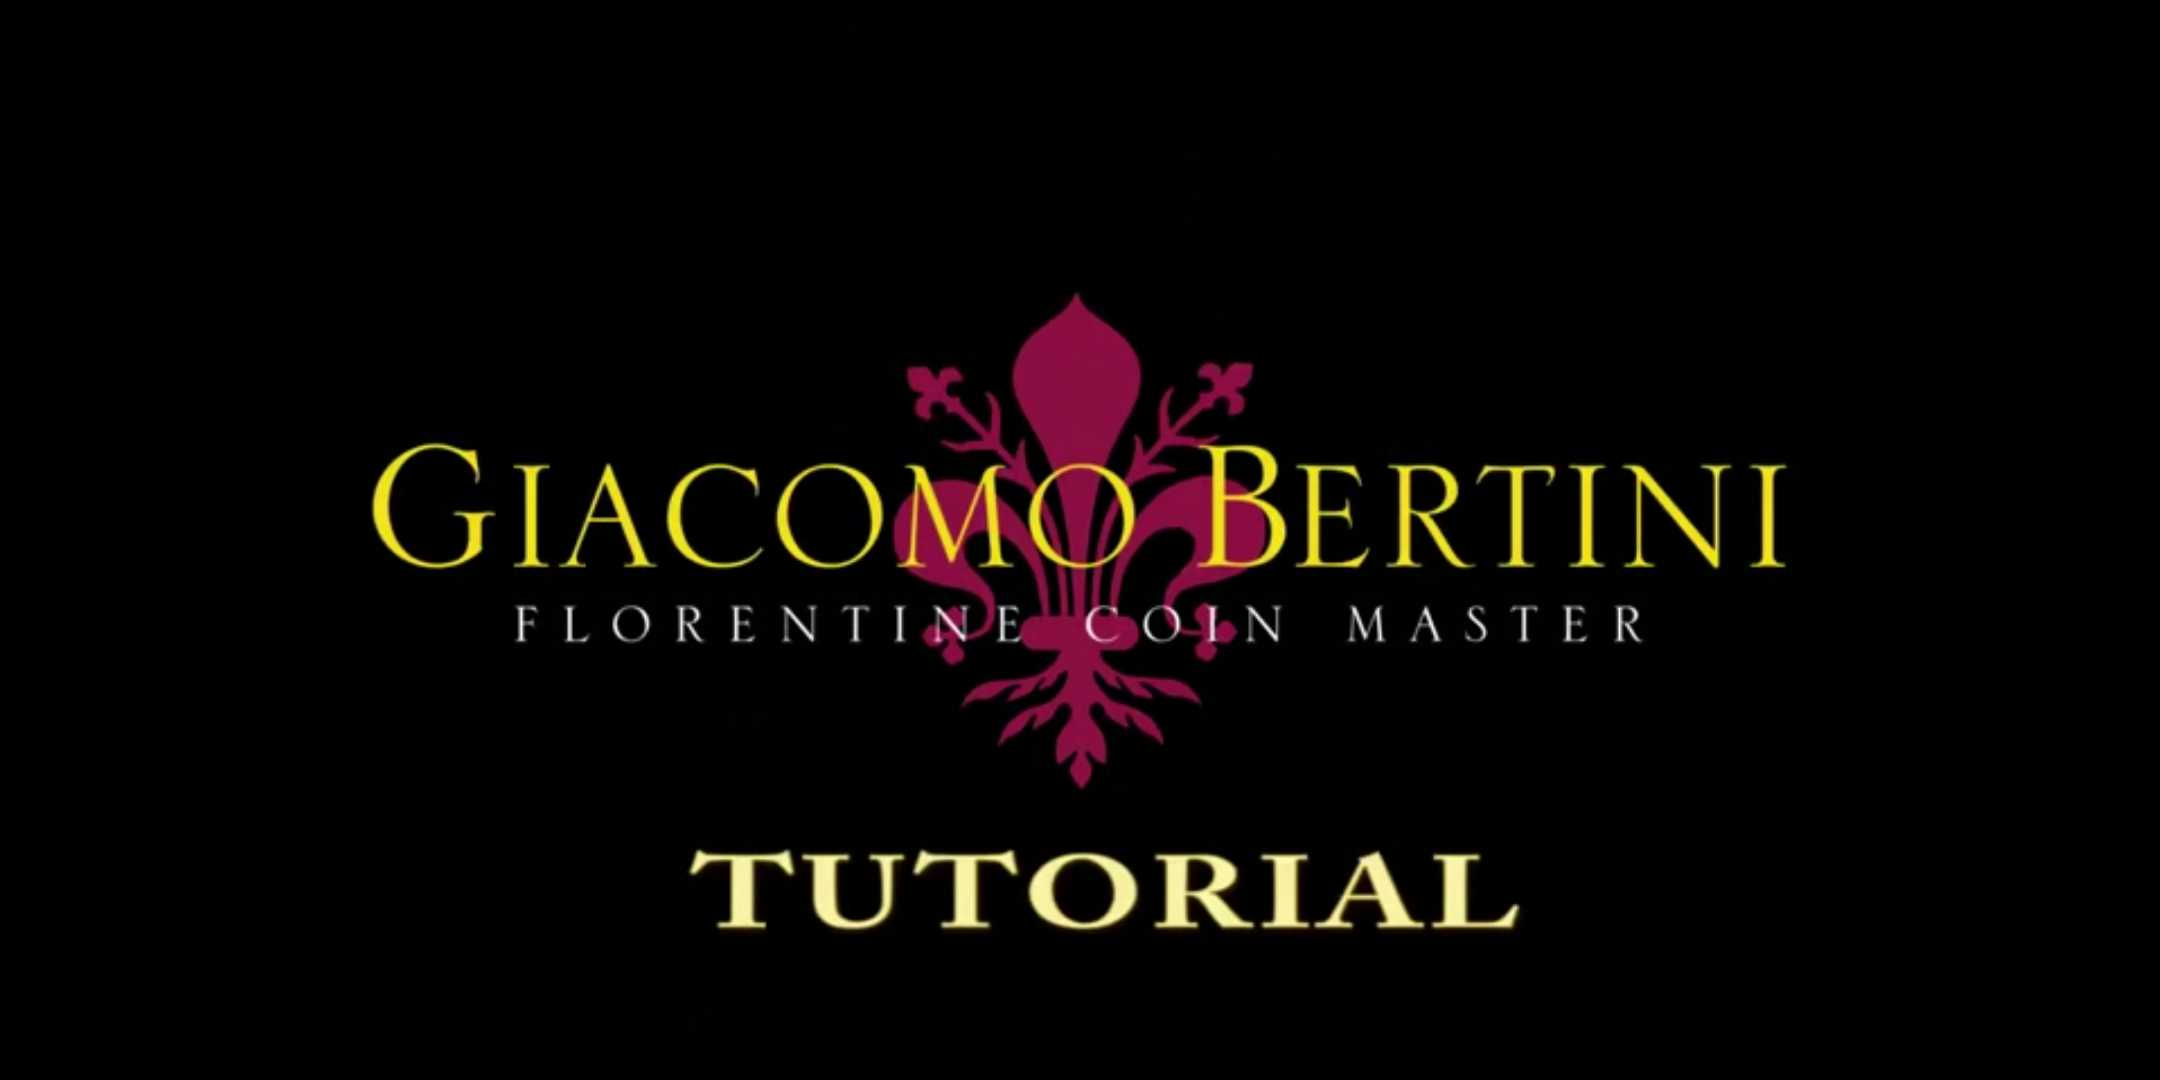 Spellbound By Giacomo Bertini Magic Instructions  Magic Trick